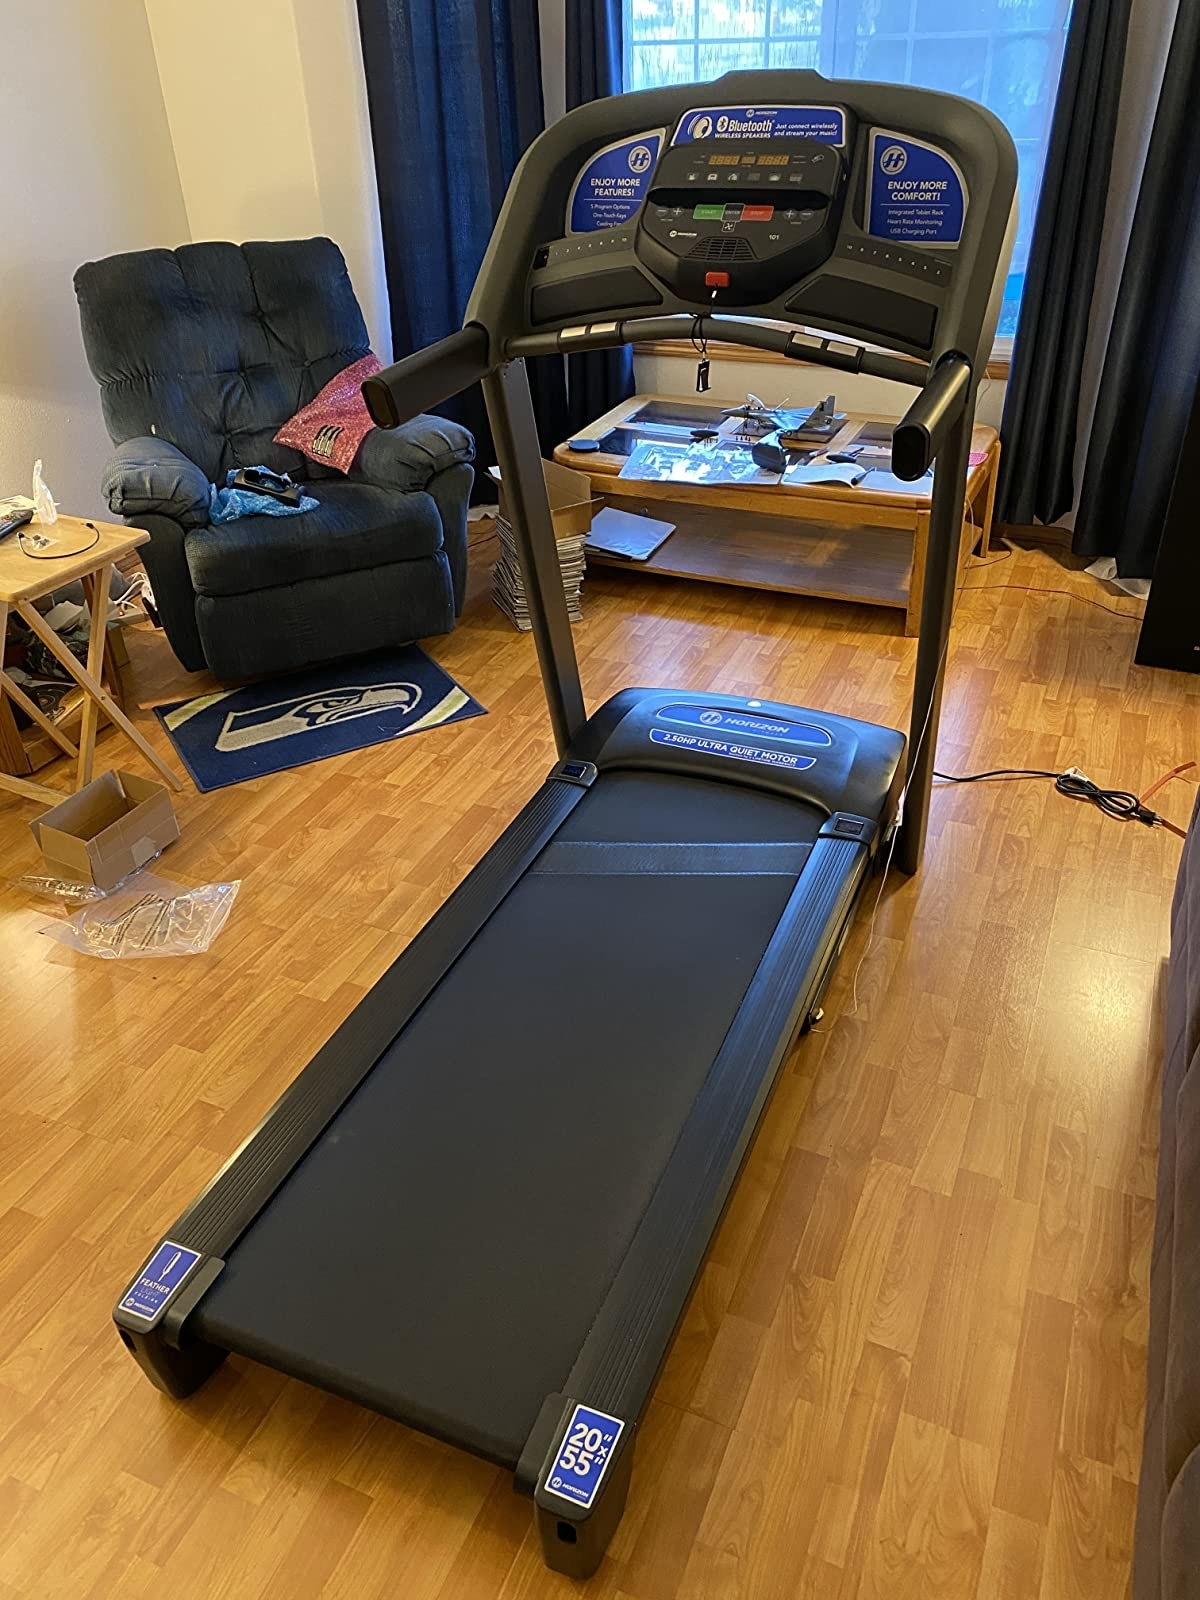 a reviewer's treadmill in their home